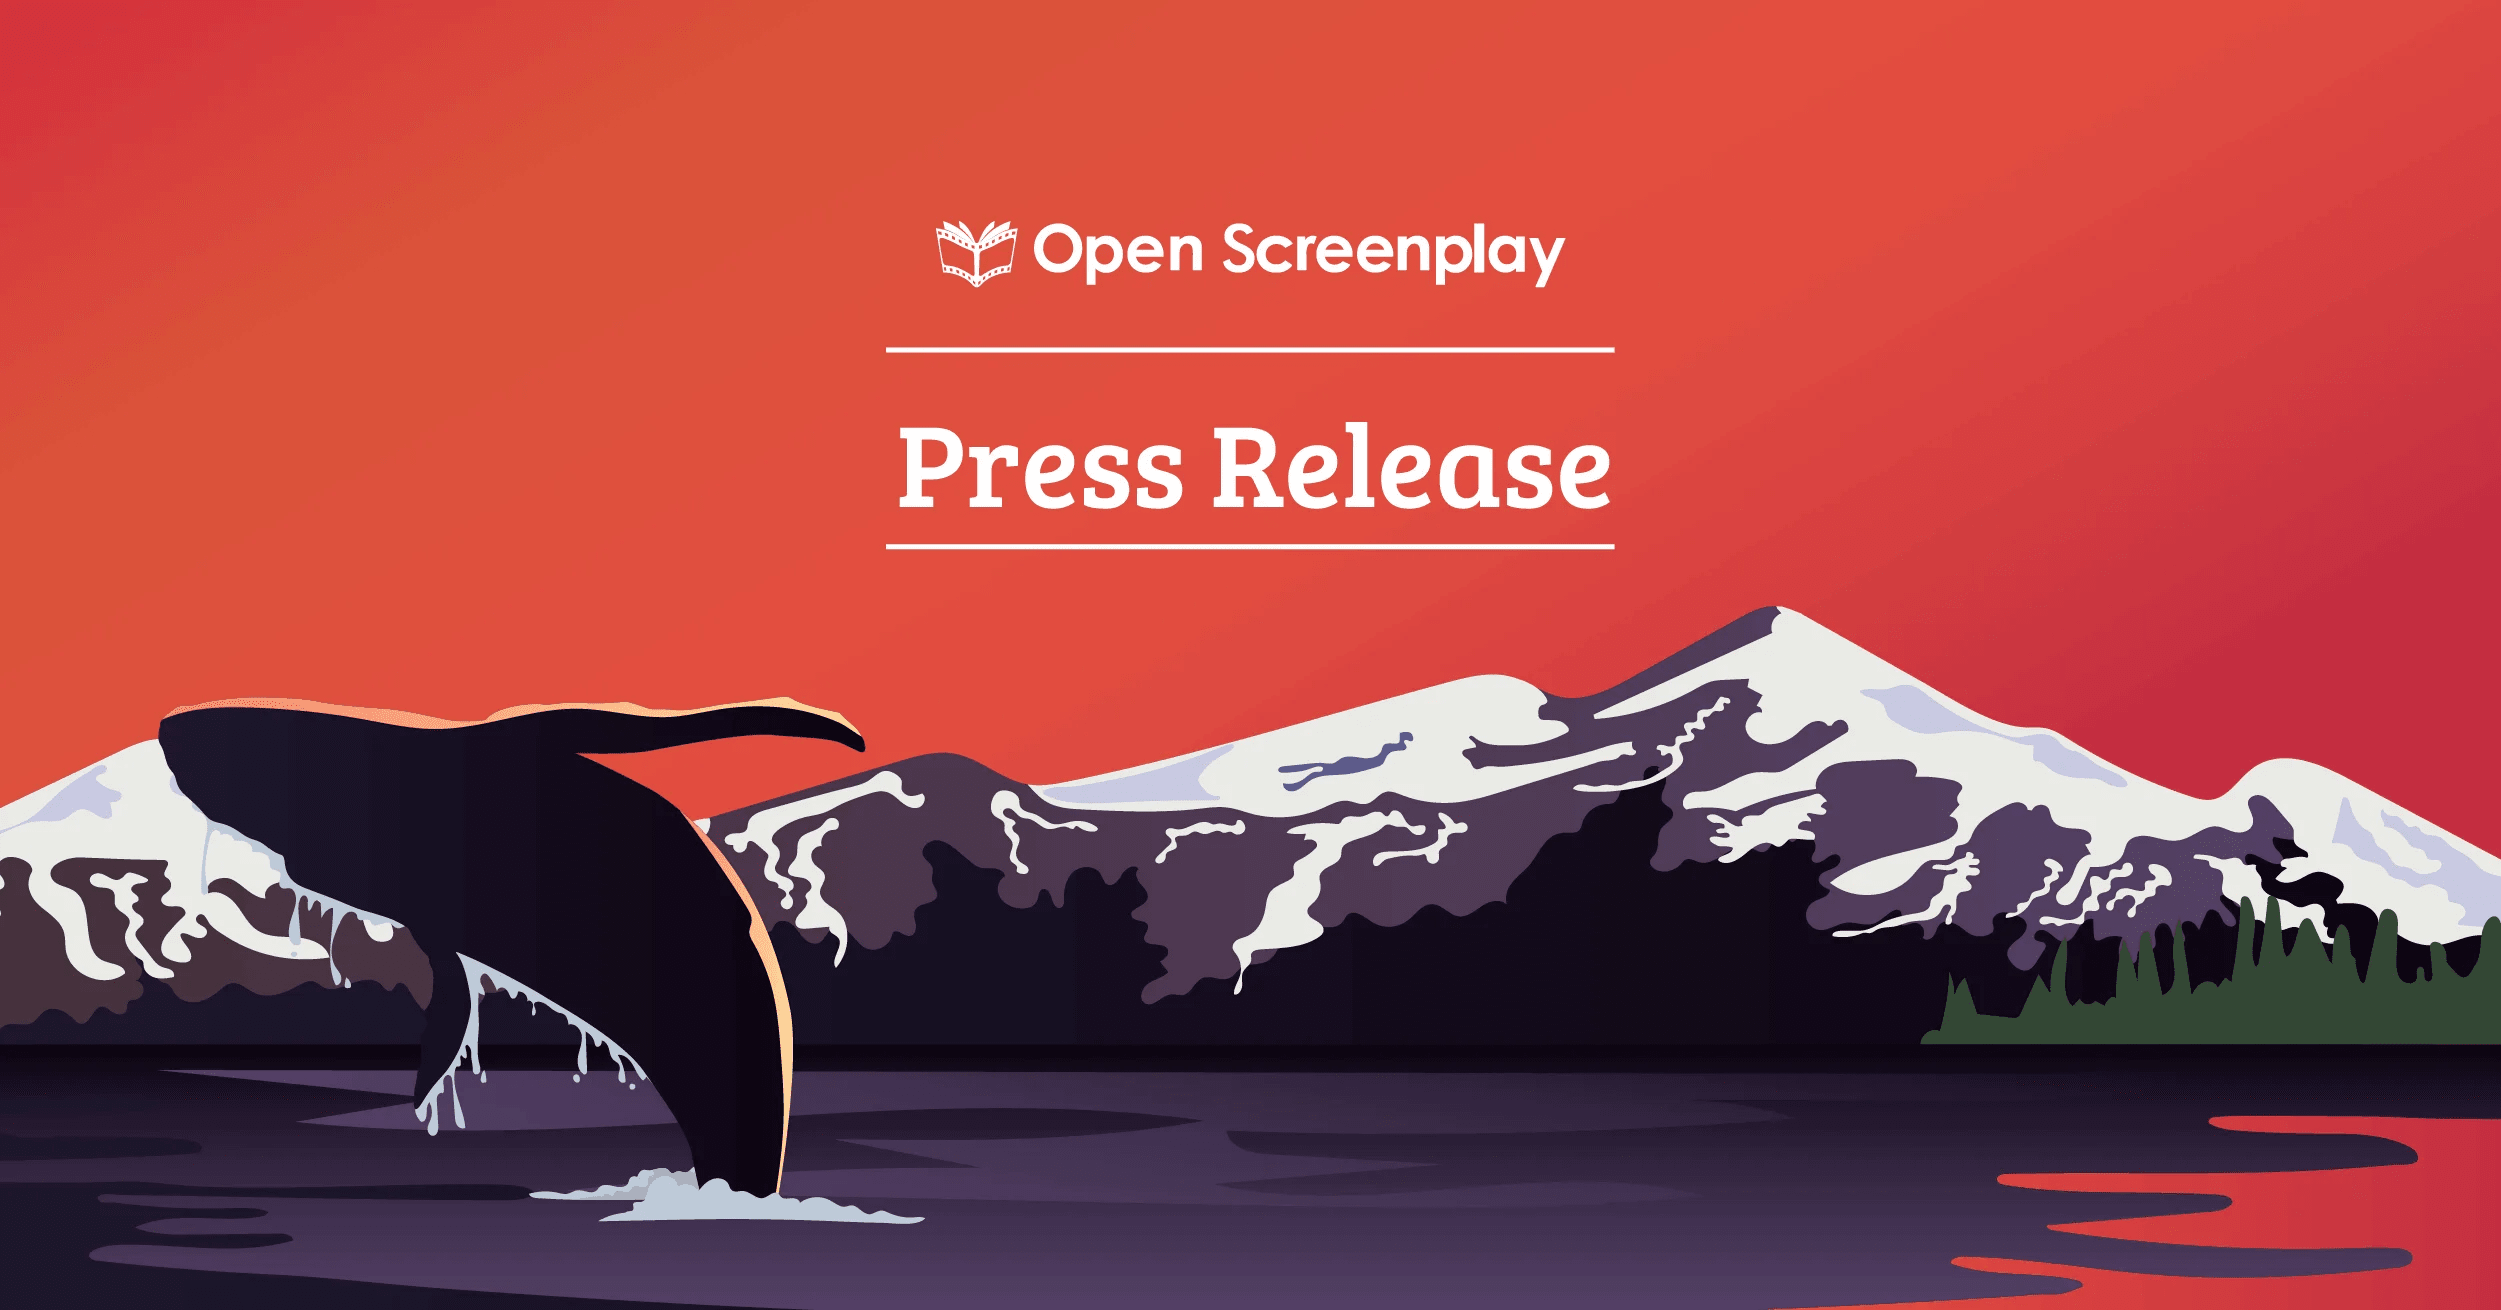 Open Screenplay launching global short film screenplay contest to bring awareness to – and drive an important conversation about - the crucial role of individuals in combating climate change.